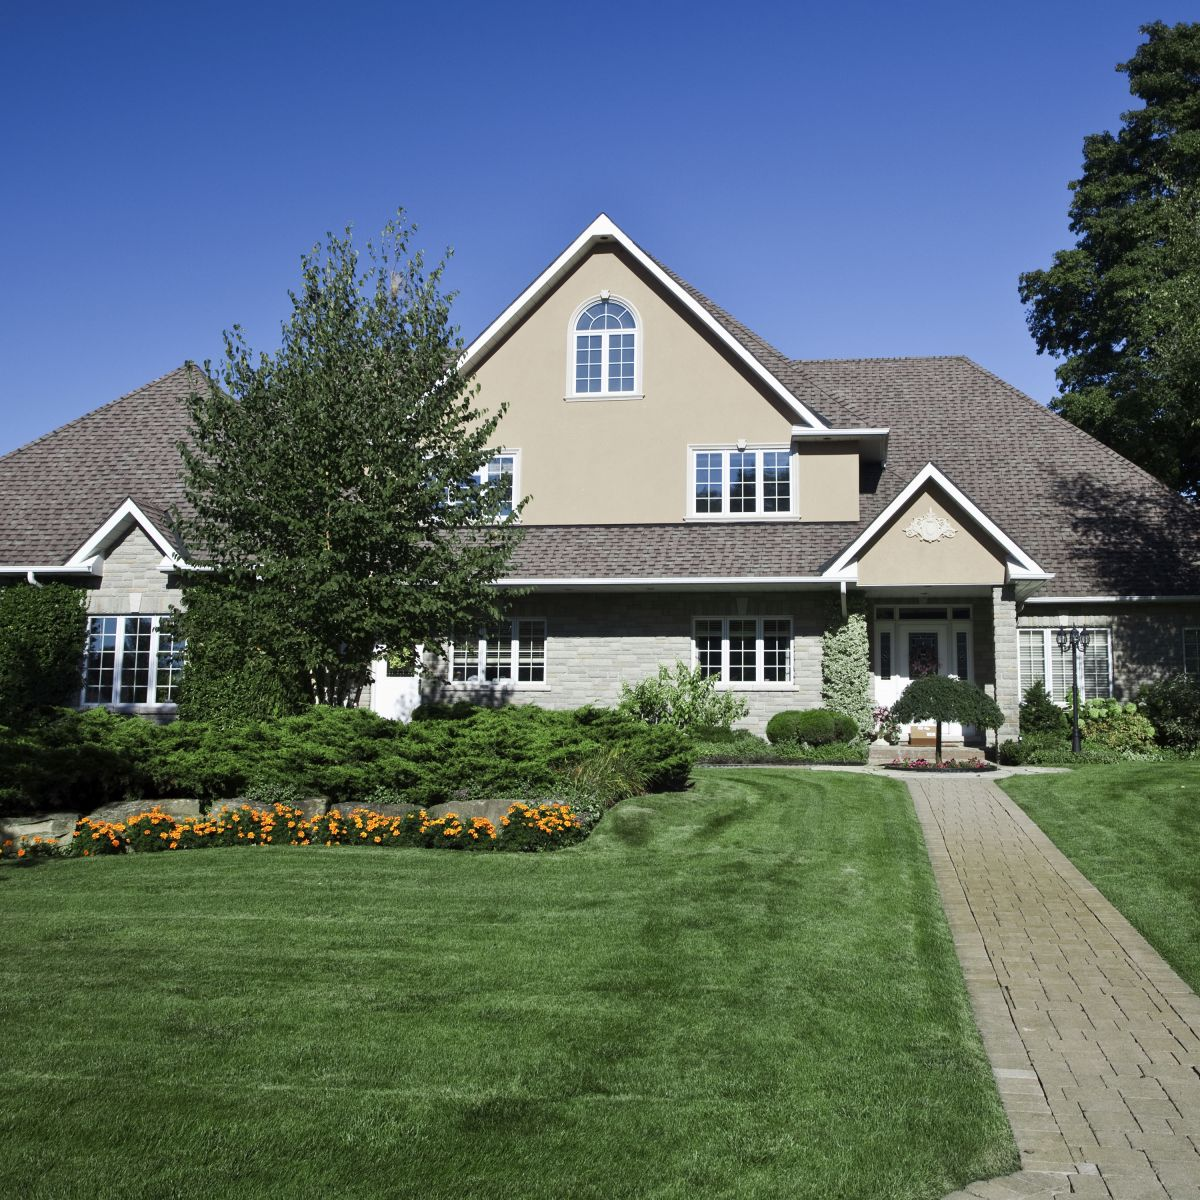 Siding for your home is an important decision.